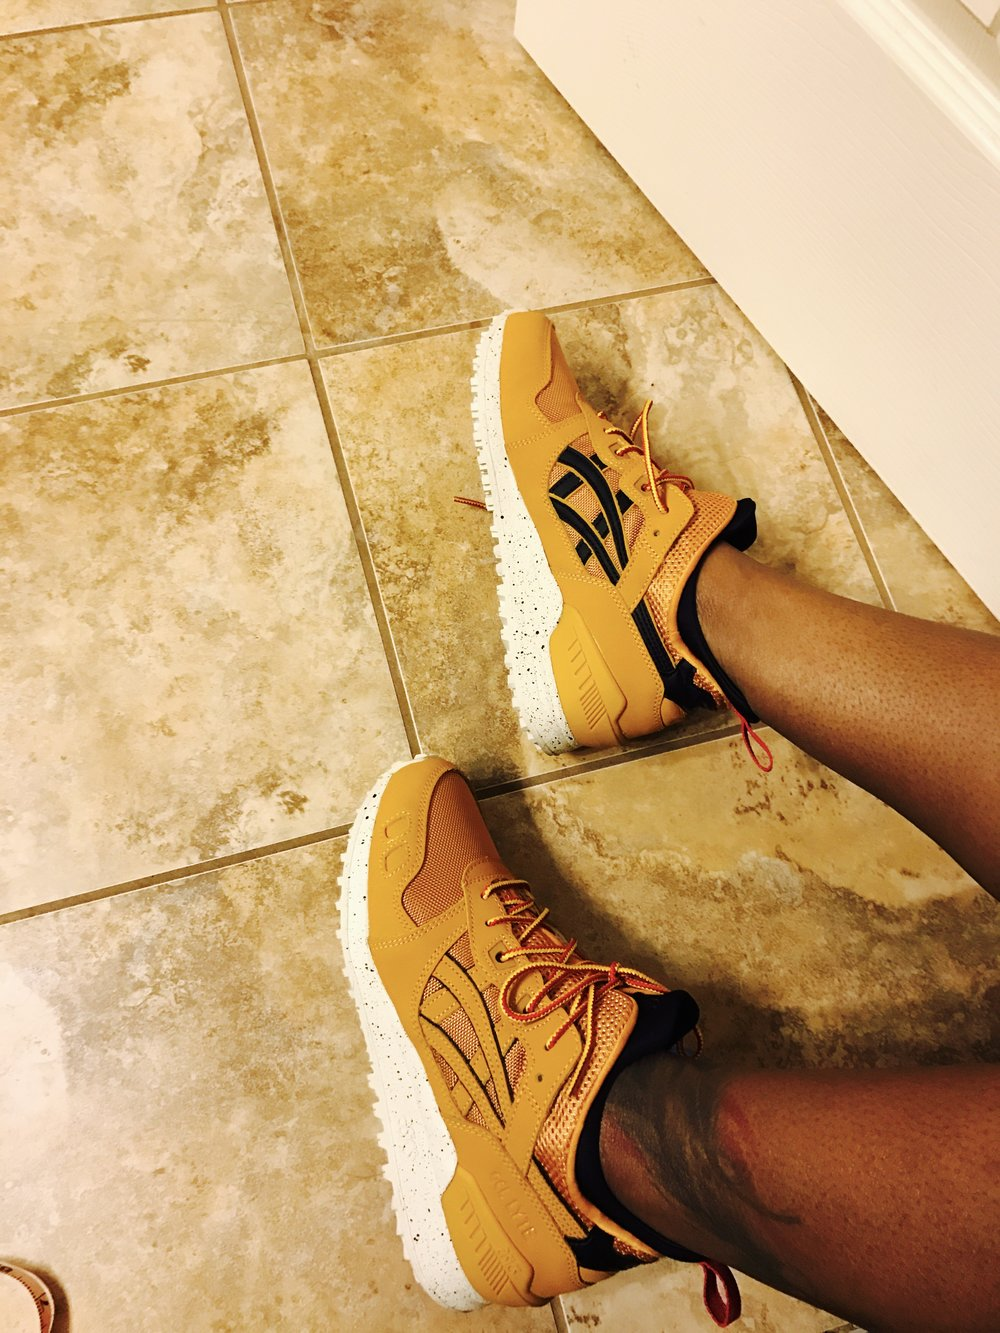 "I've been sleeping on ASICS. And I didn't know that ASICS is an acronym derived from the Latin phrase, ""Anima Sana In Corpore Sano"" - a sound mind in a sound body. At least, that's what the tag said. Pretty fitting for my goals at this moment. Maybe if I wear these, my body will be healed."